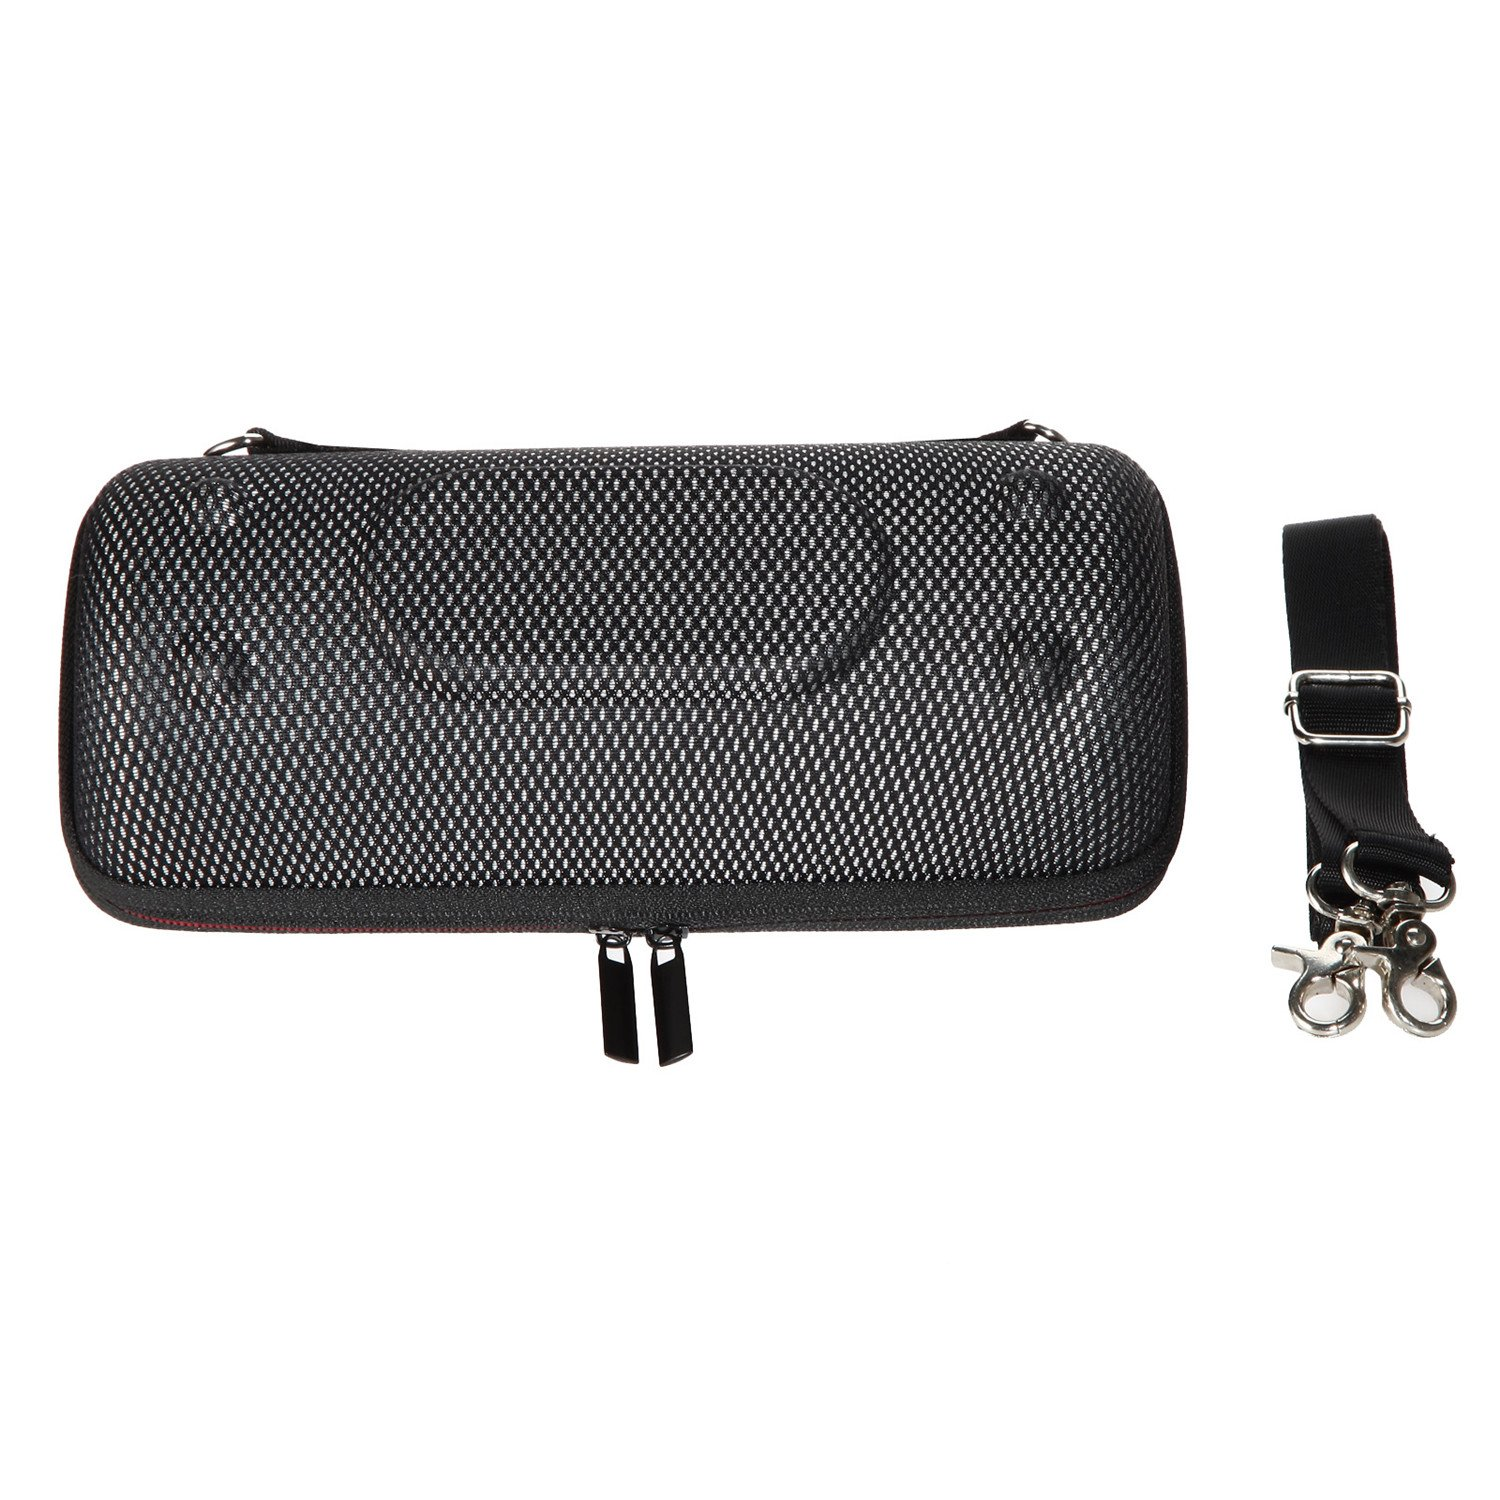 LuckyNV Hard EVA Protective Storage Case for JBL Charge 3 Wireless Bluetooth Portable Speaker (Black-A) L136-JBL3-A